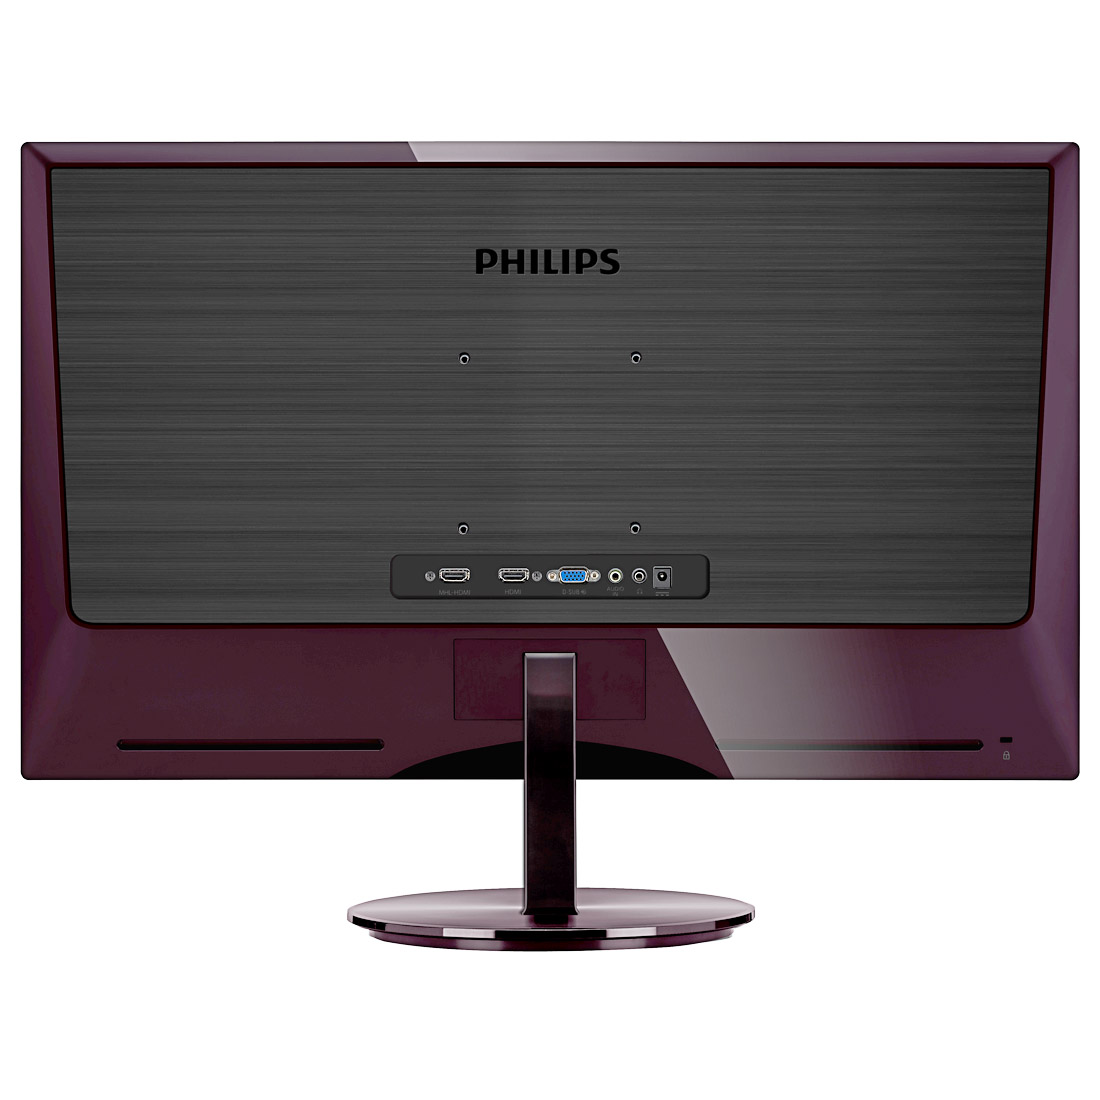 Monitor LCD 21.5, Widescreen, HDMI, HDCP - 224E5QHAB - Philips